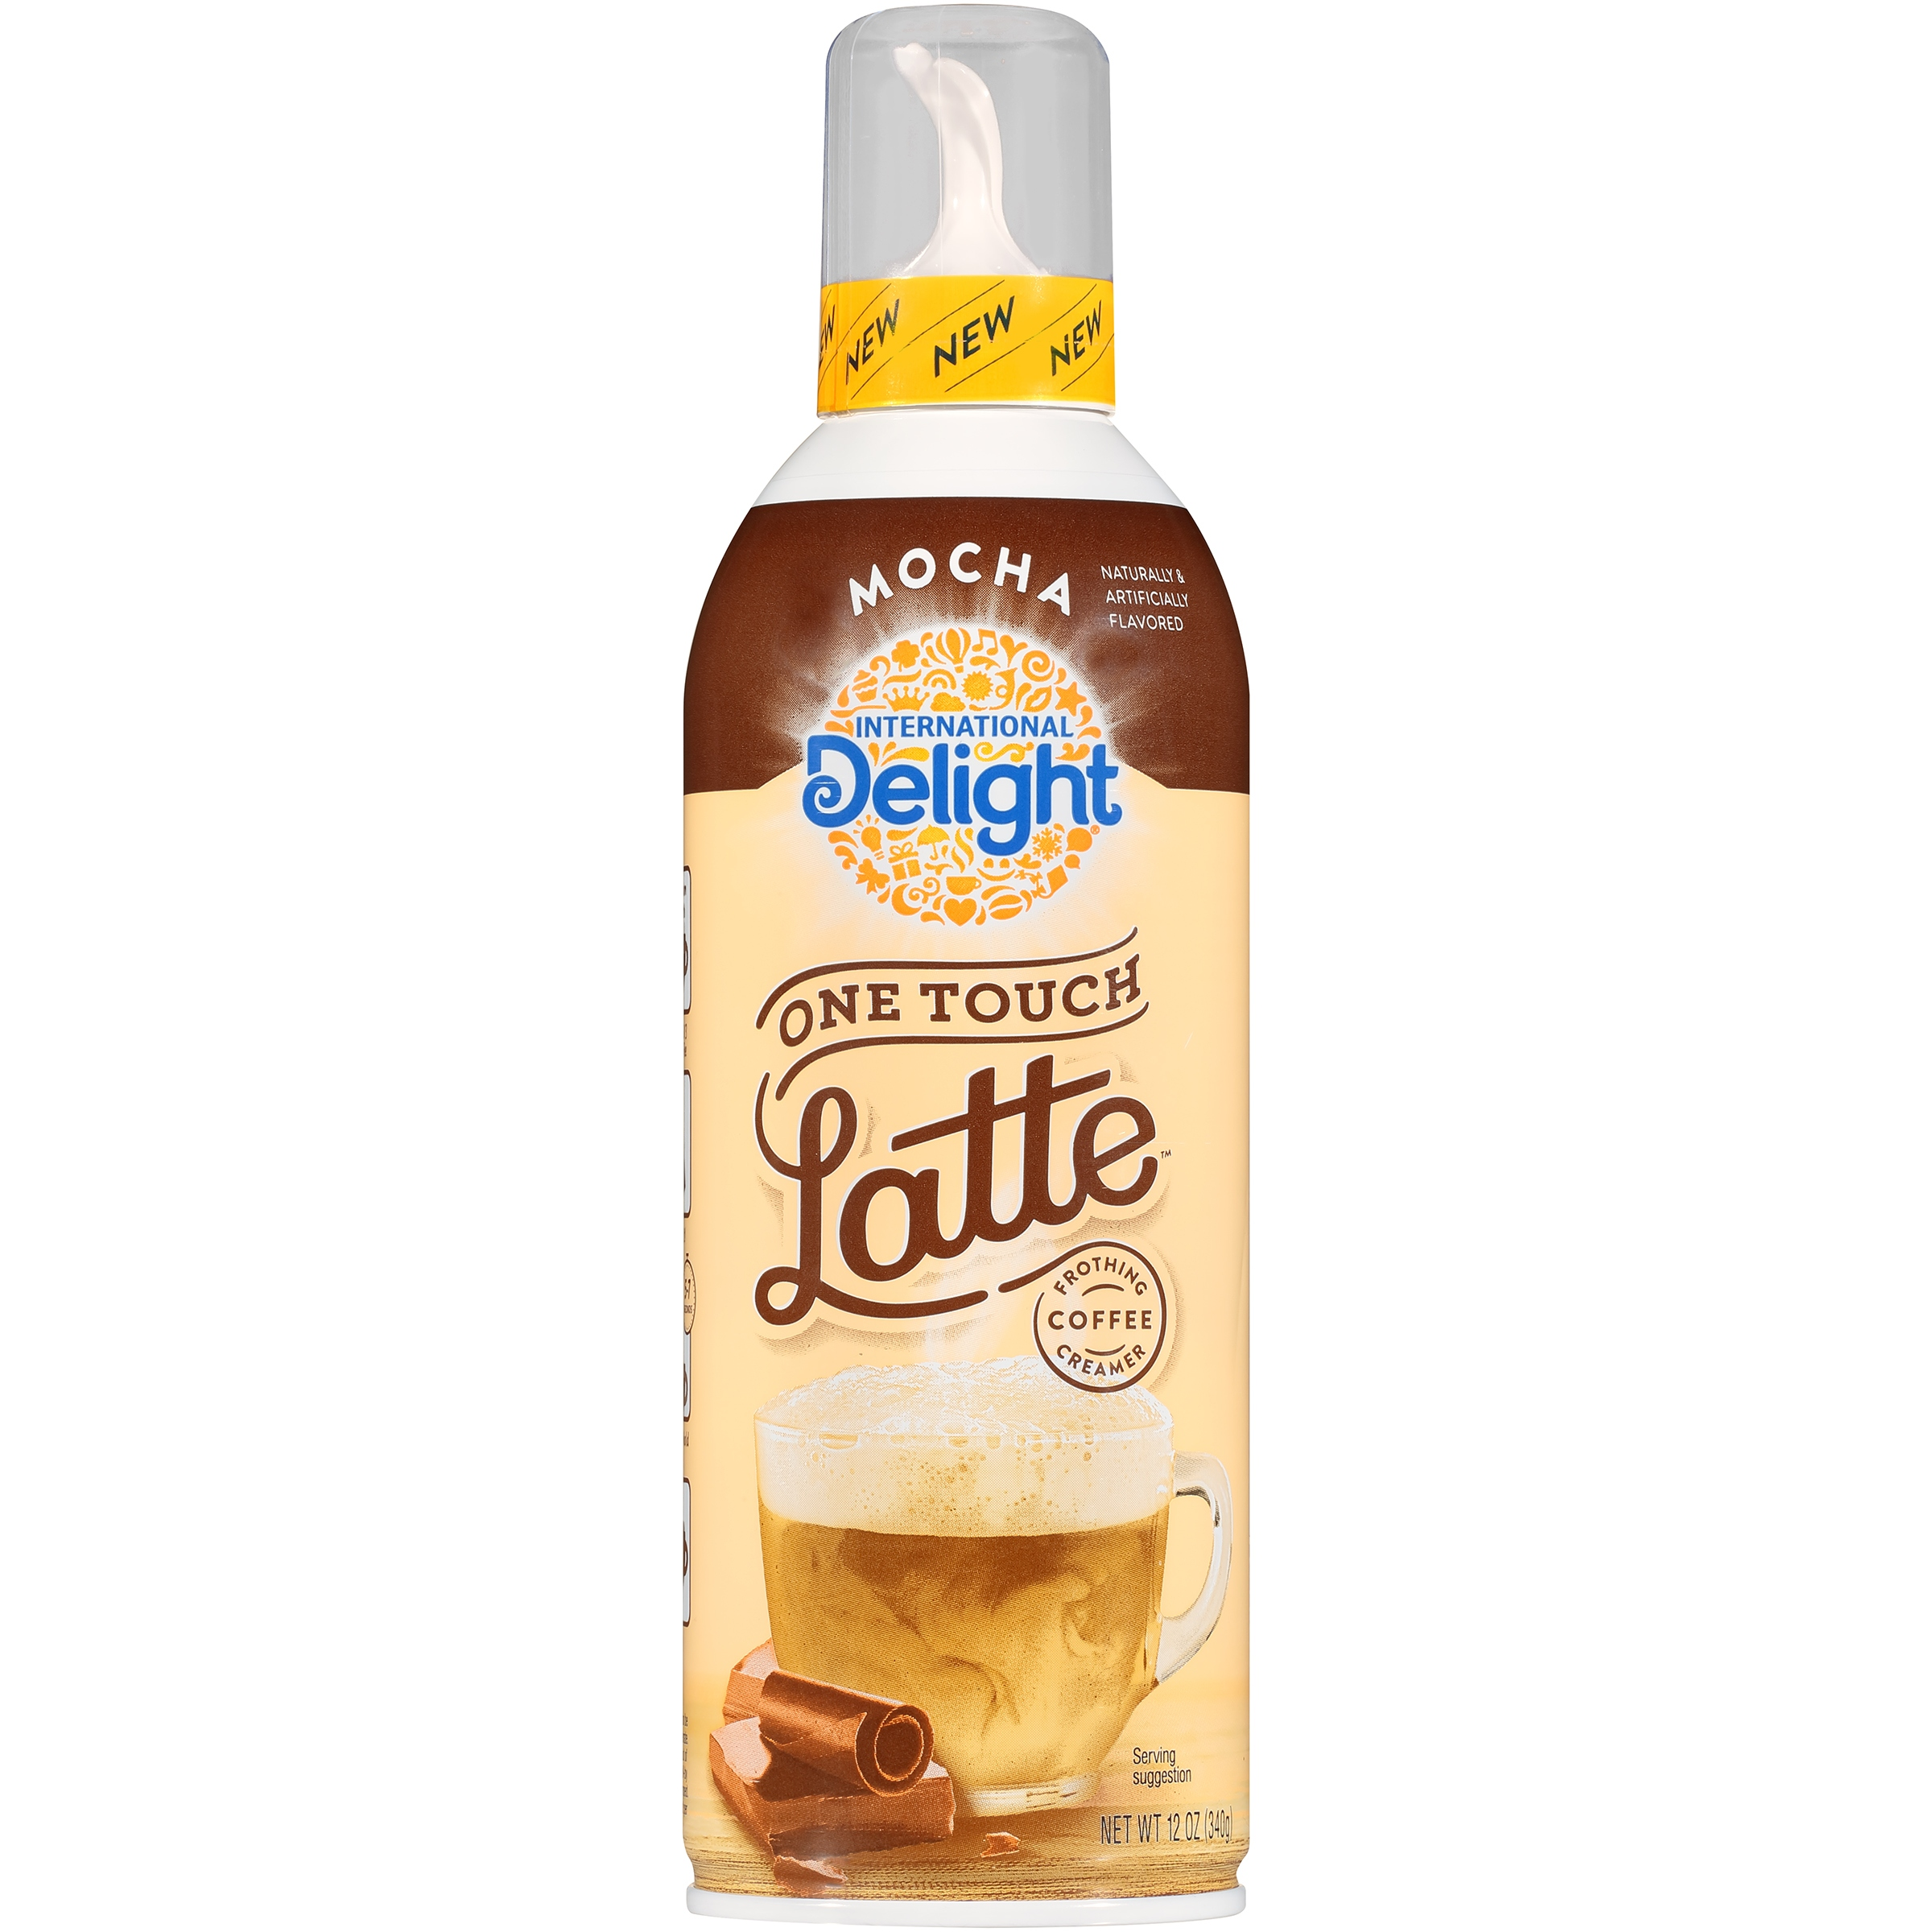 Image result for delight latte spray